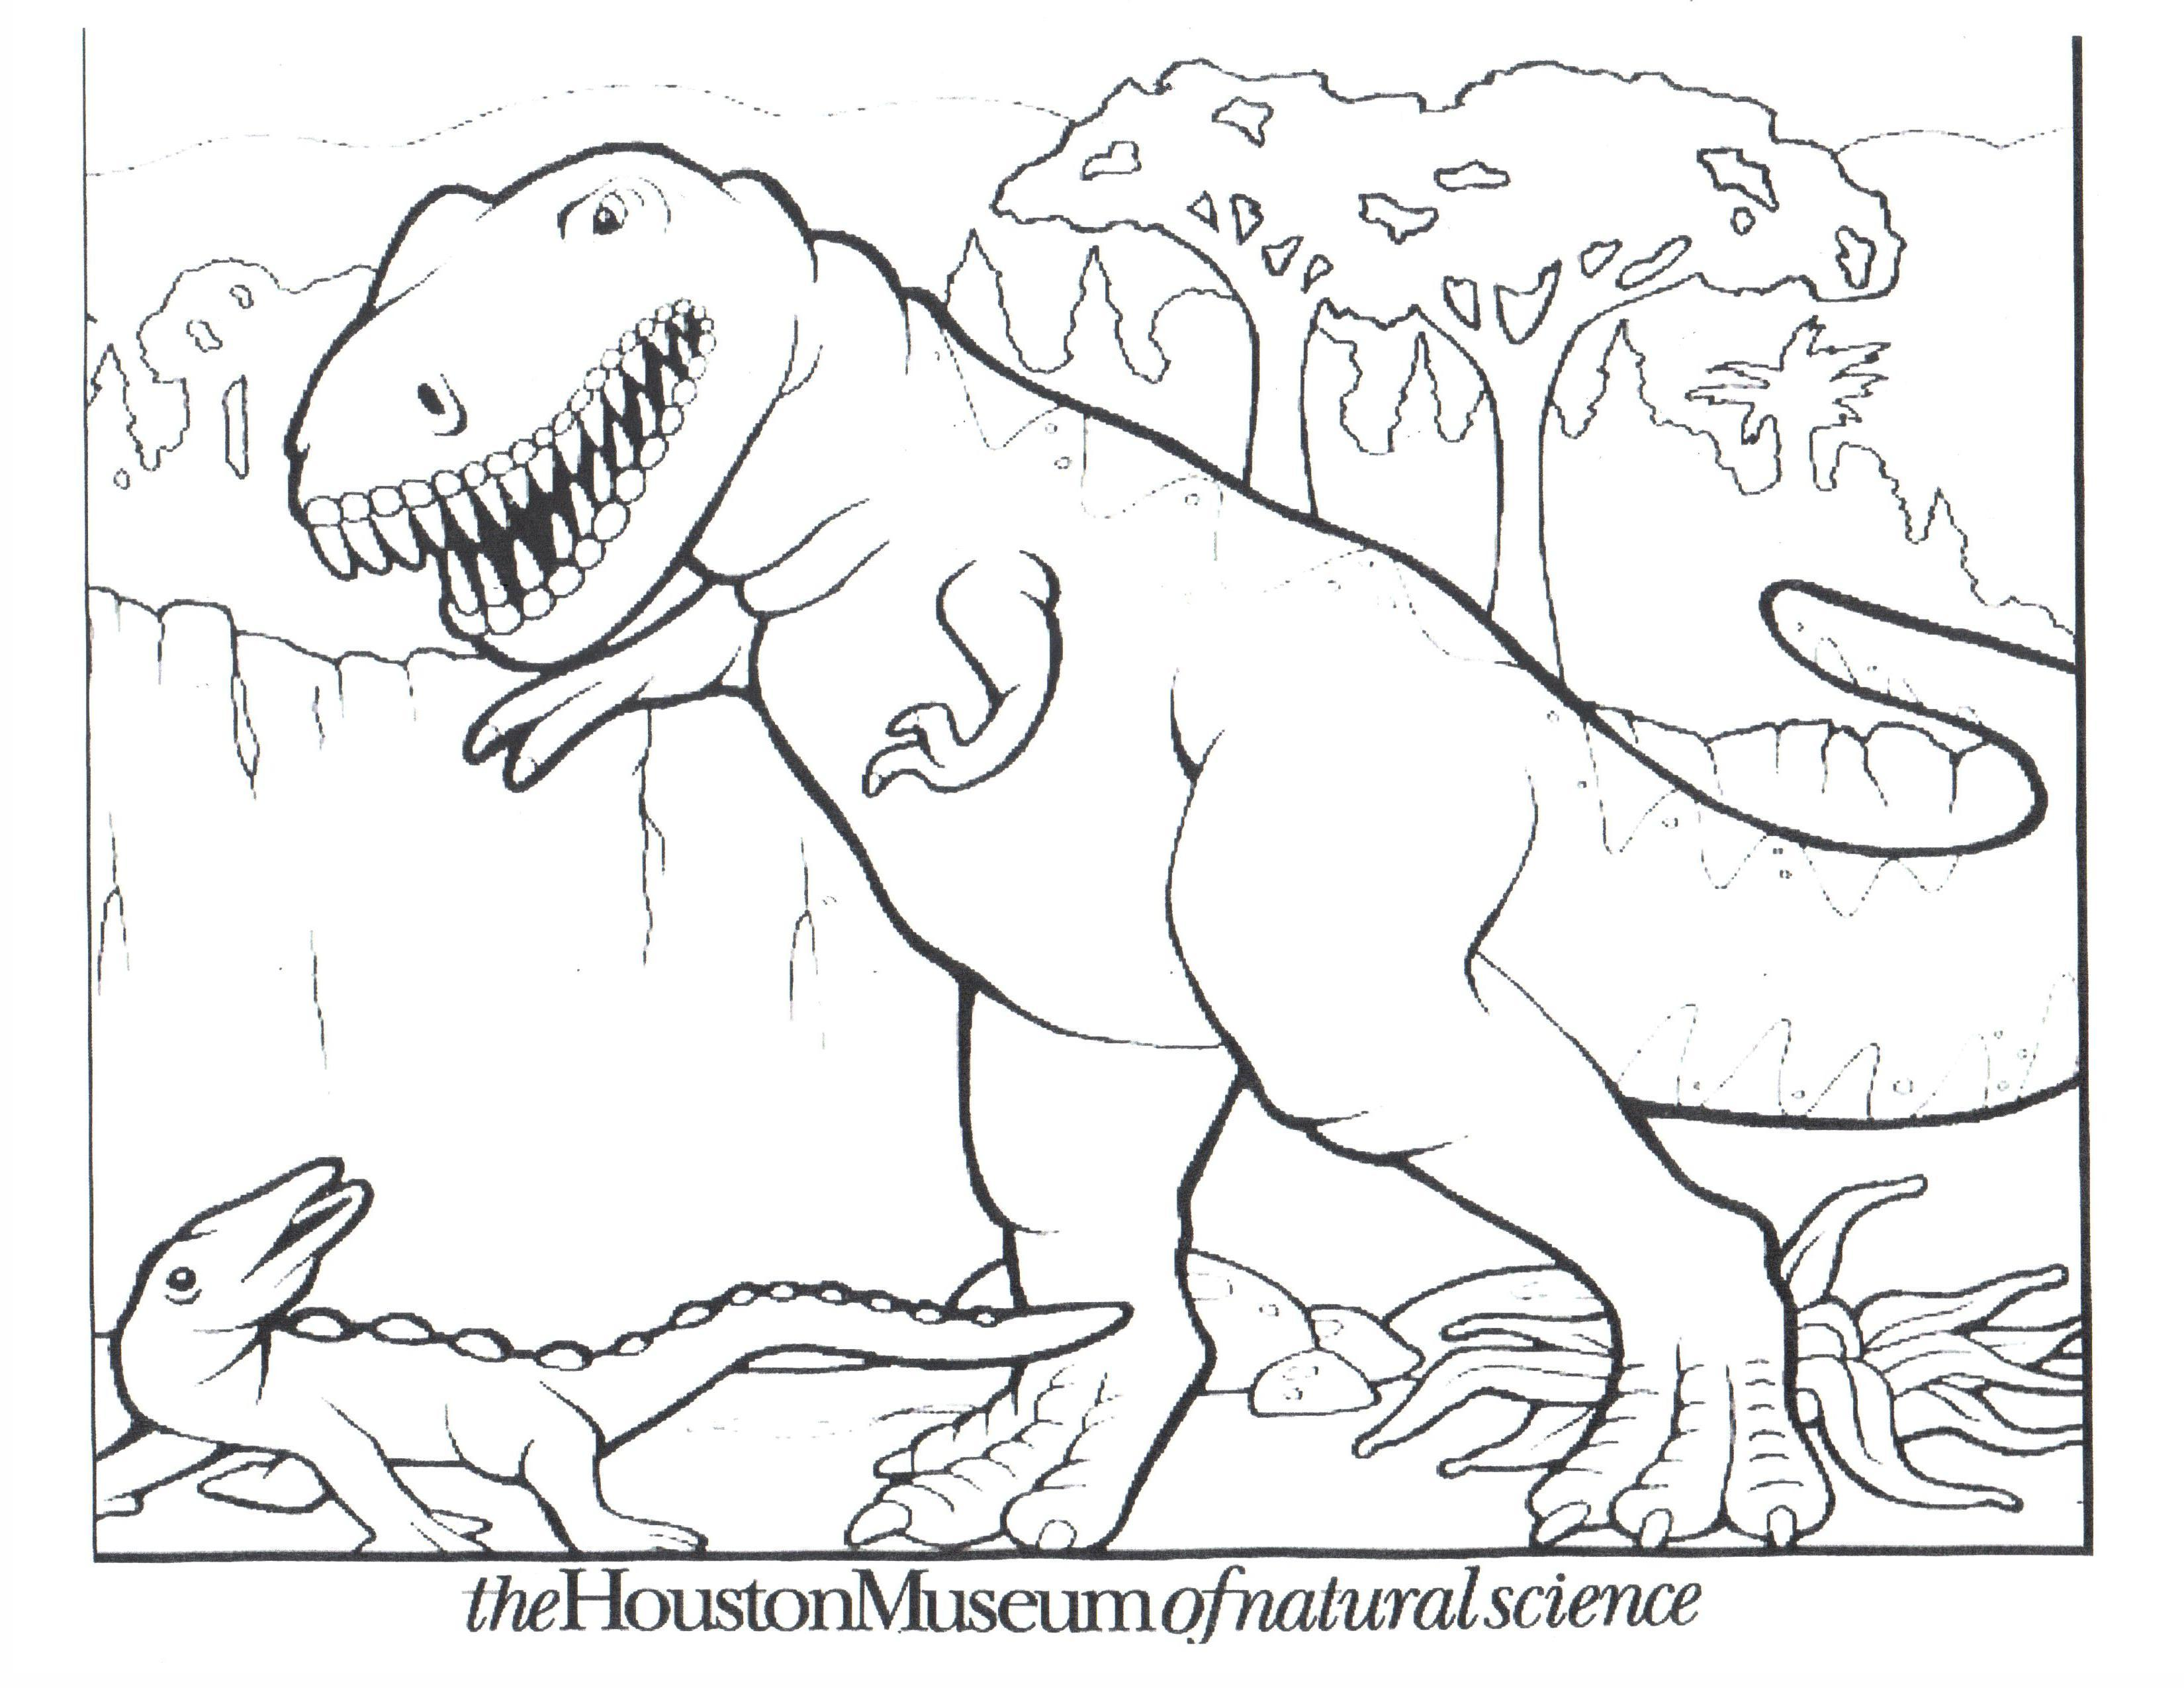 3300x2550 Stegosaurus Dinosaur Cartoon Coloring Pages For Kids Printable